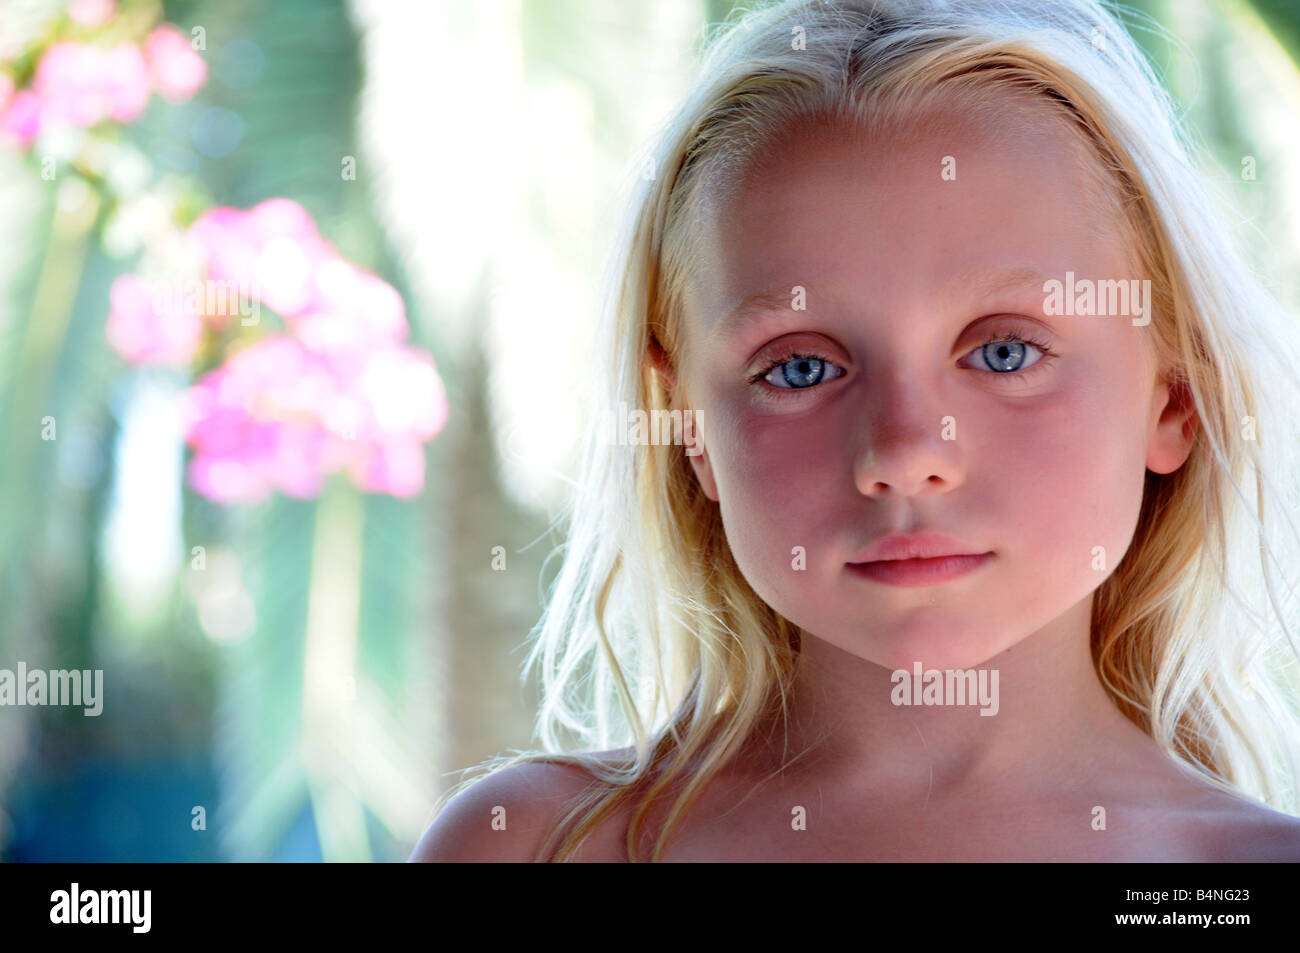 Royalty free photograph of young girl with fair light skin on summer holiday with high factor UV skin protection - Stock Image